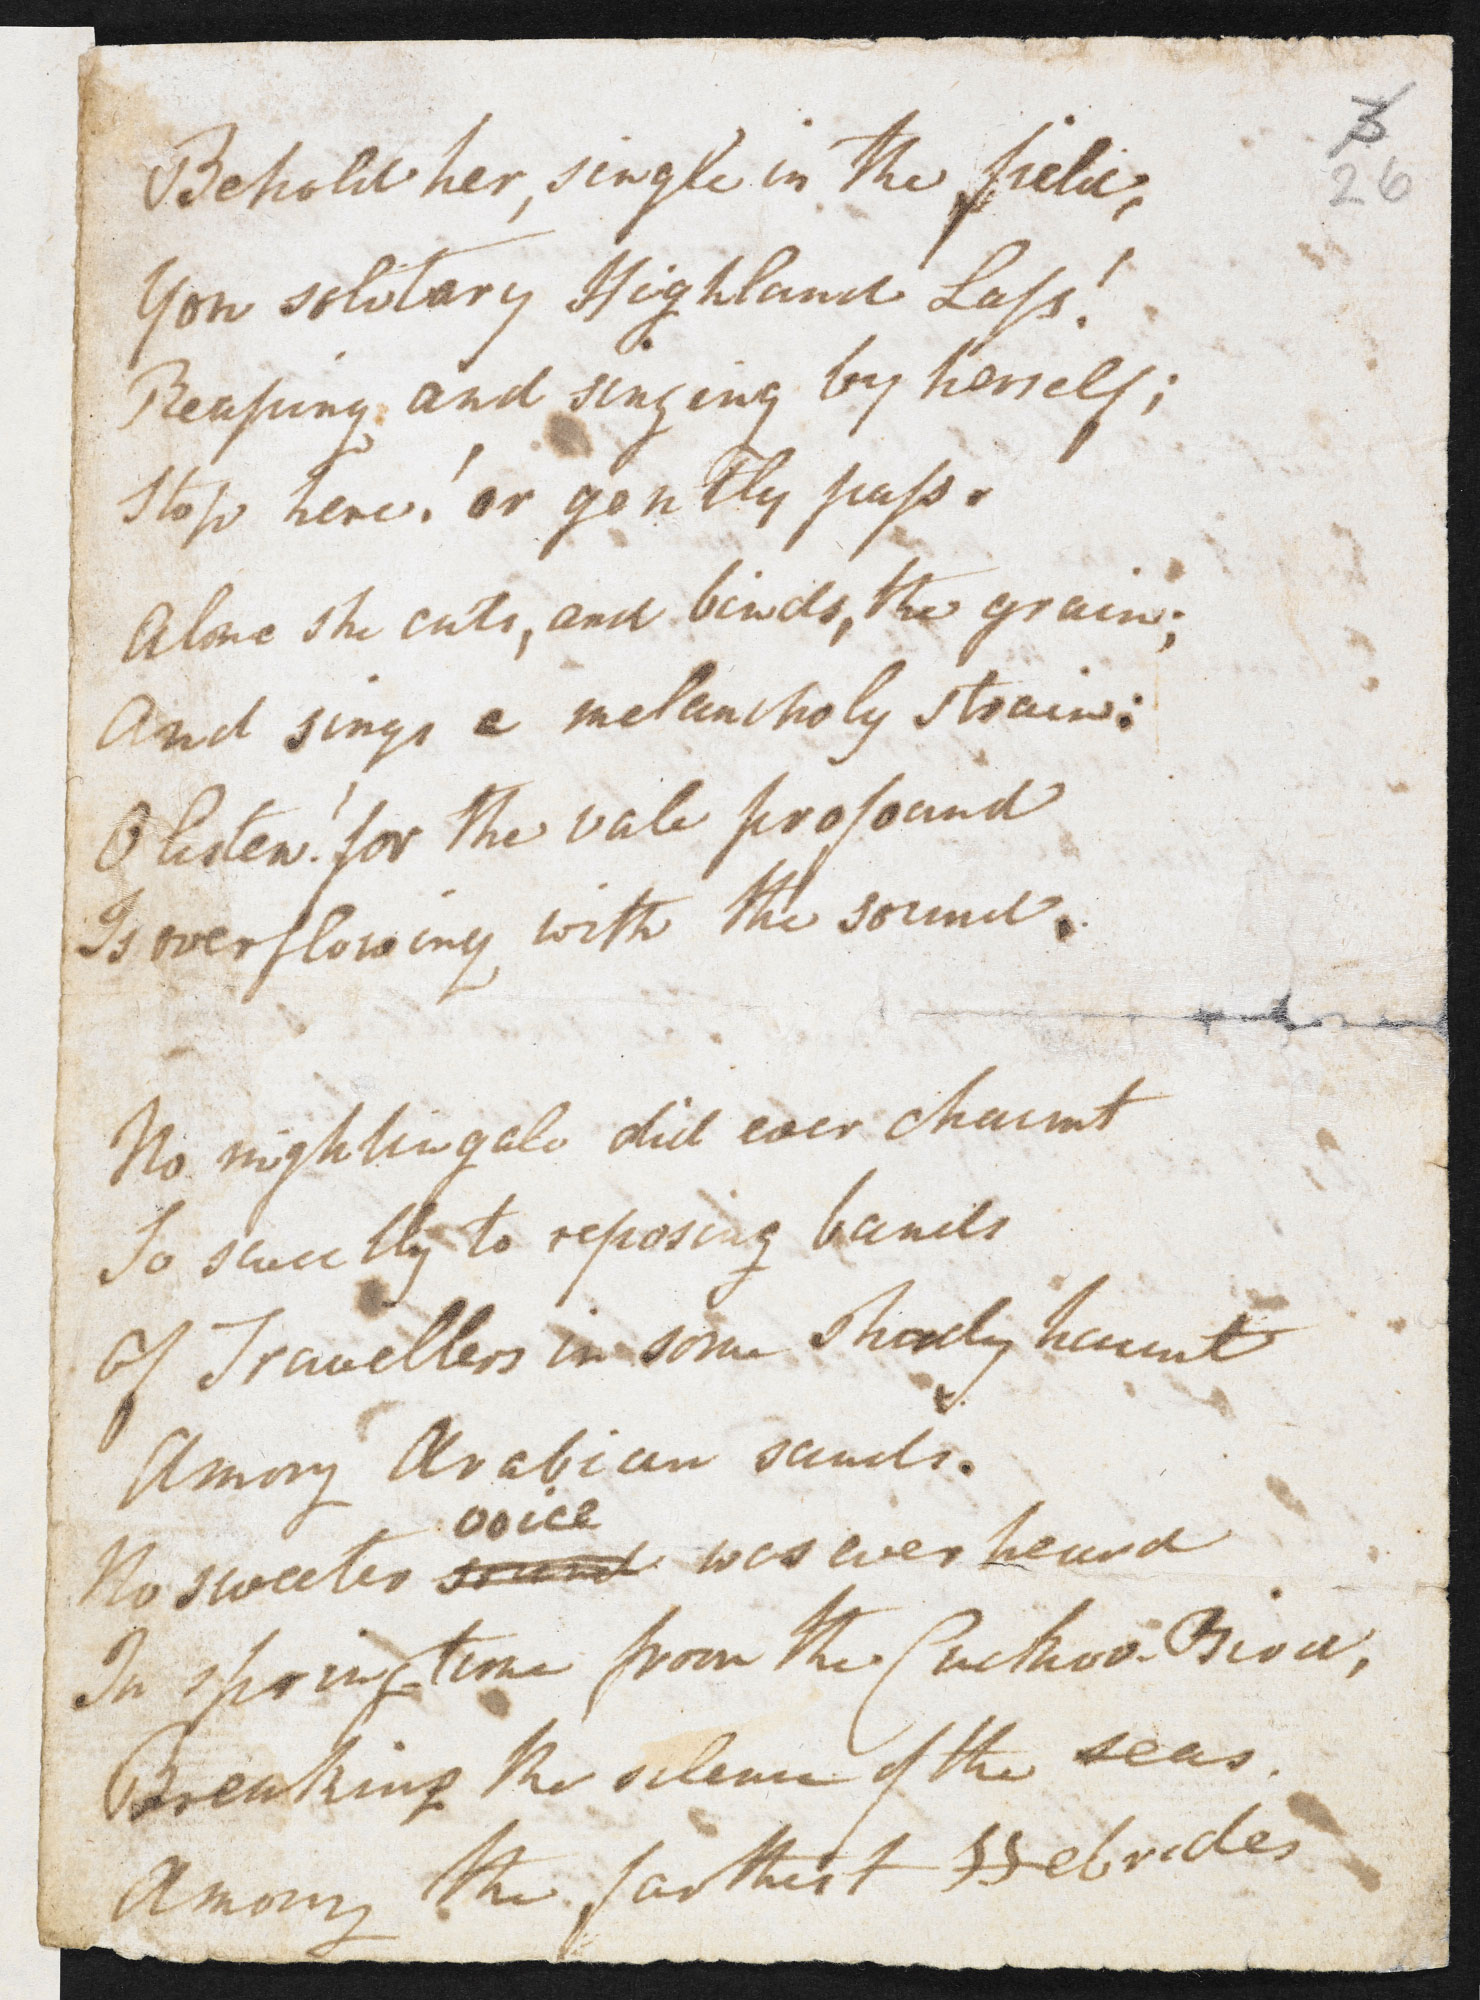 Manuscript of 'The Solitary Reaper' by William Wordsworth